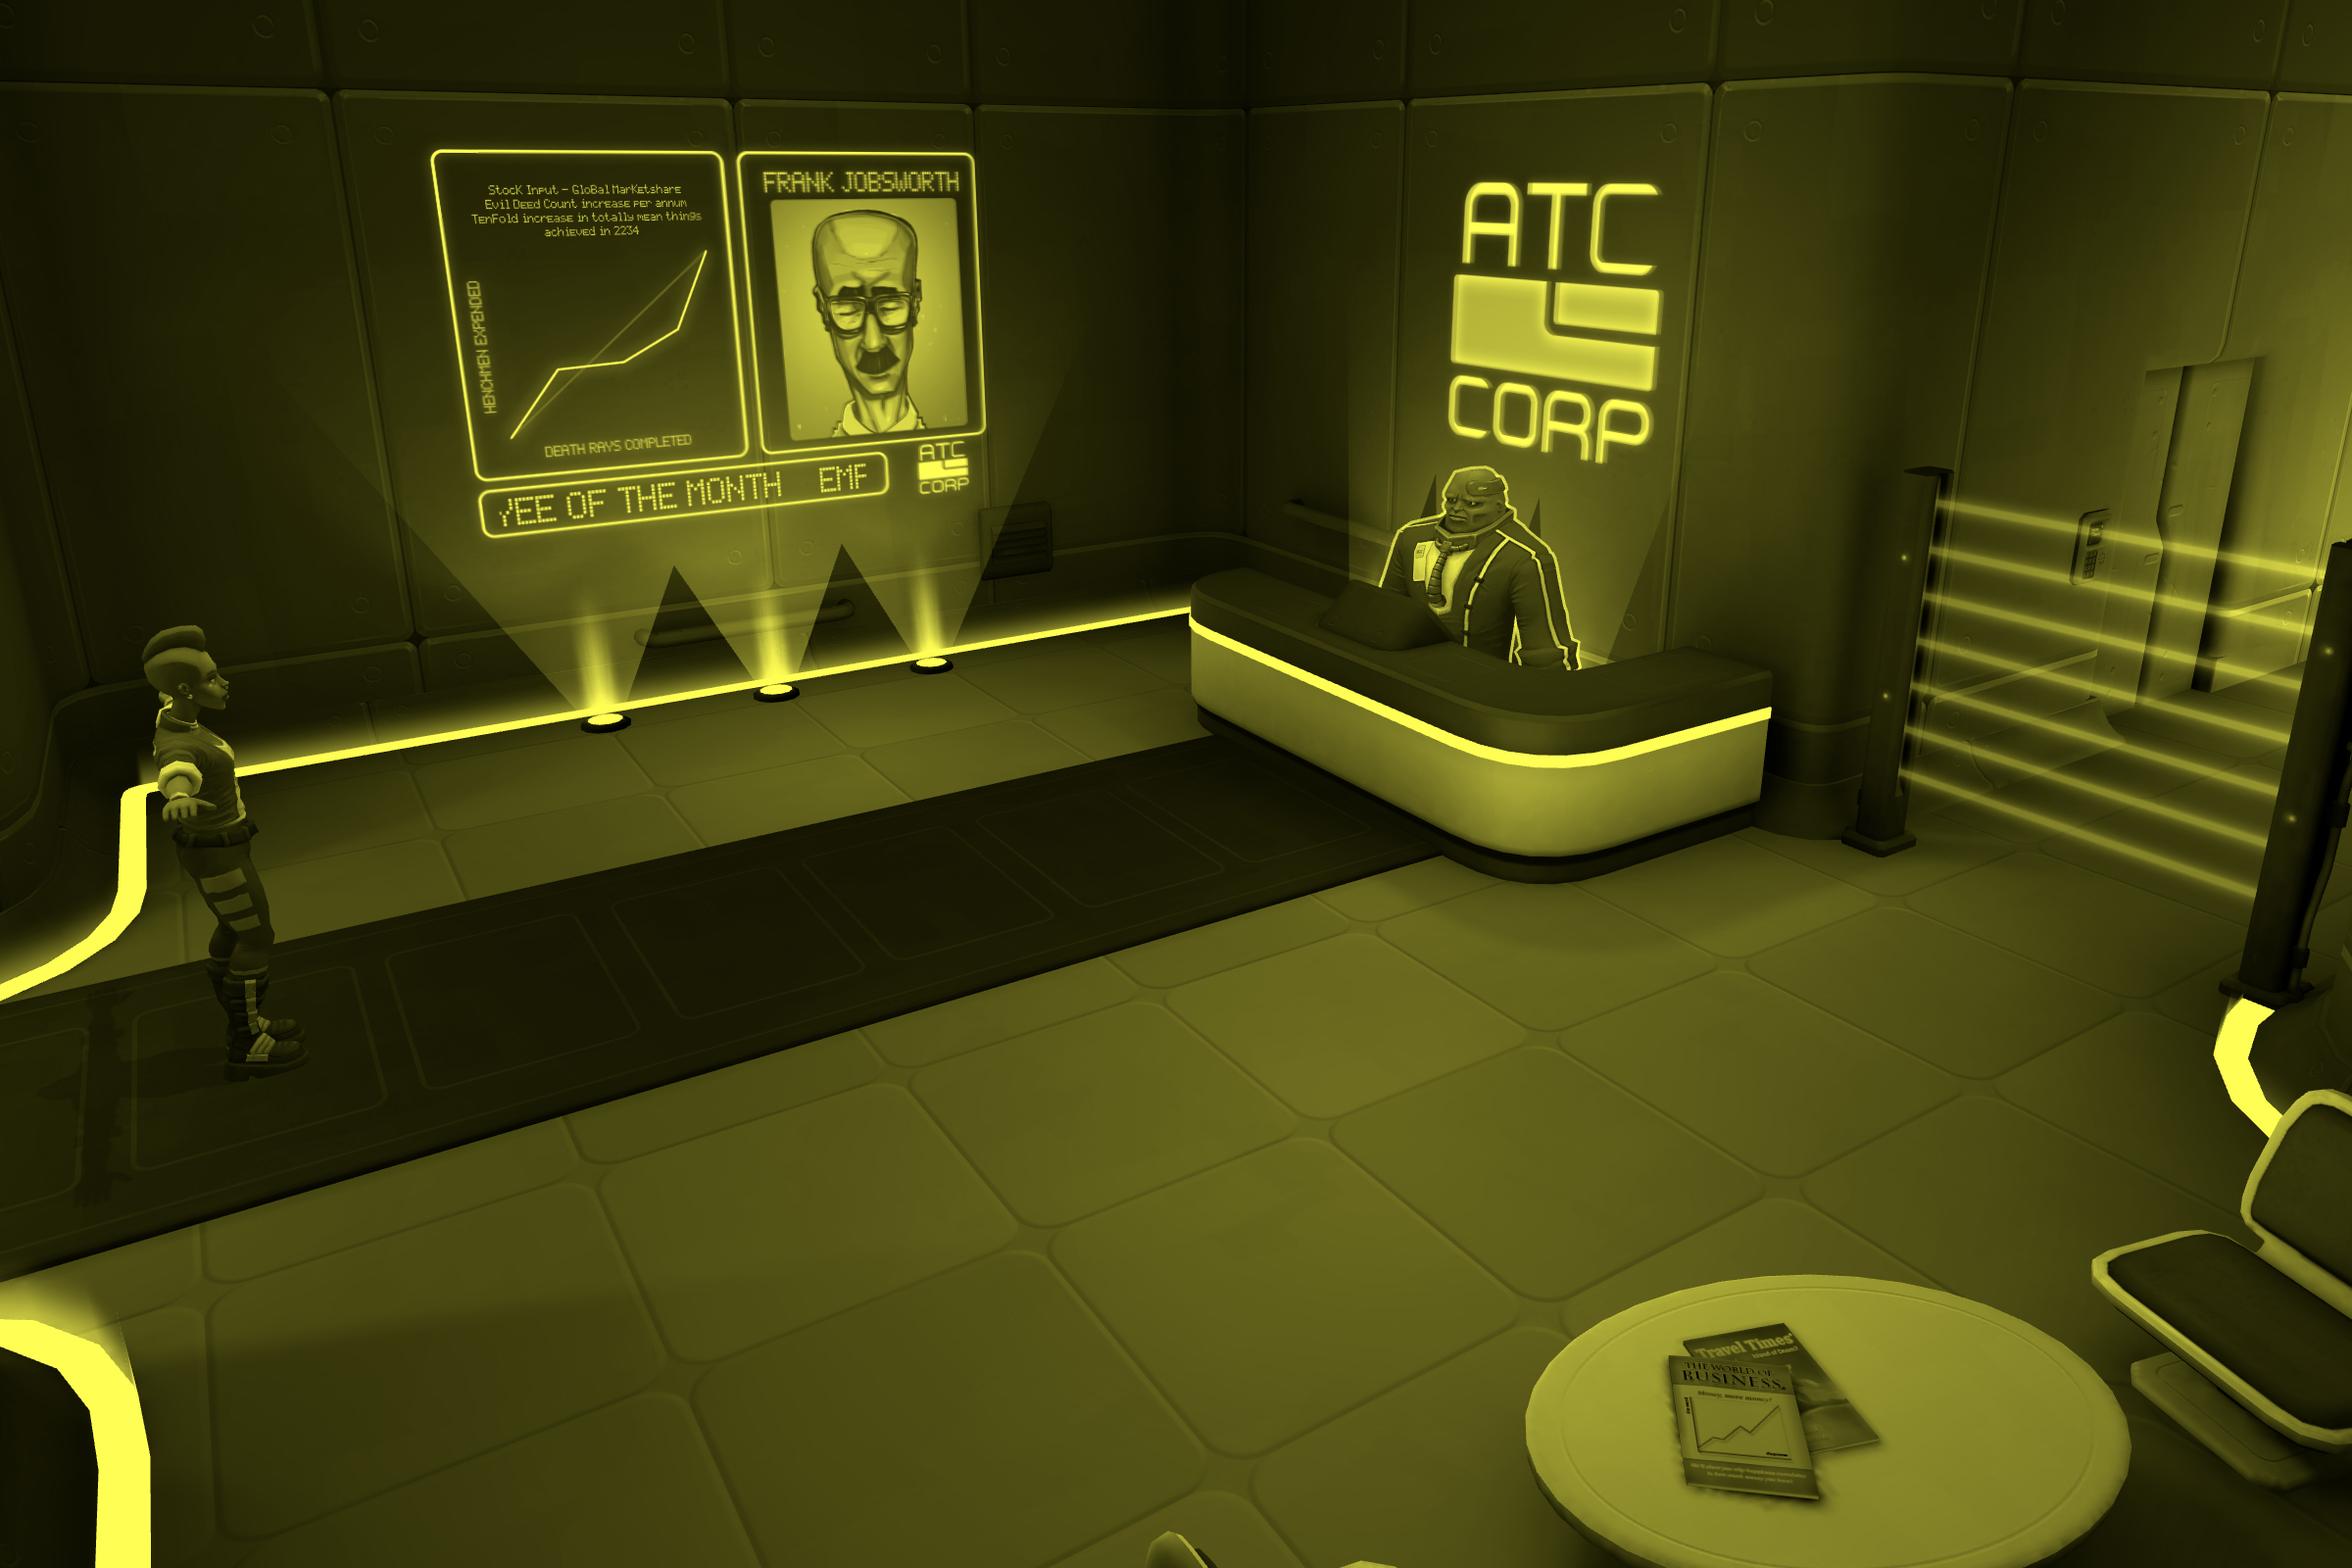 Amber-Monochrome-filtered screenshot of a scene from the Adventure Sample Game project